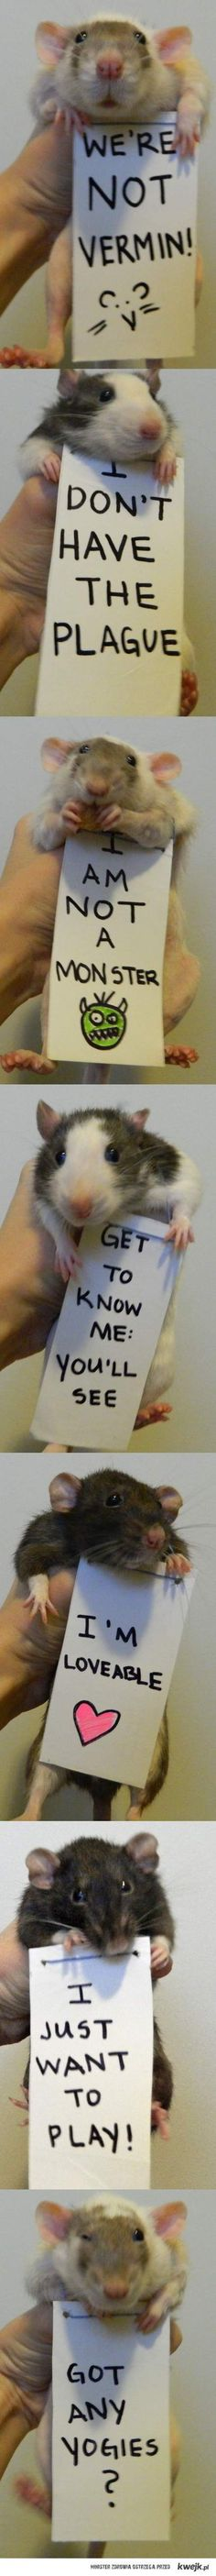 I had pet rats as a child.  They are smart, clean, trainable, and sweet as can be.  <3